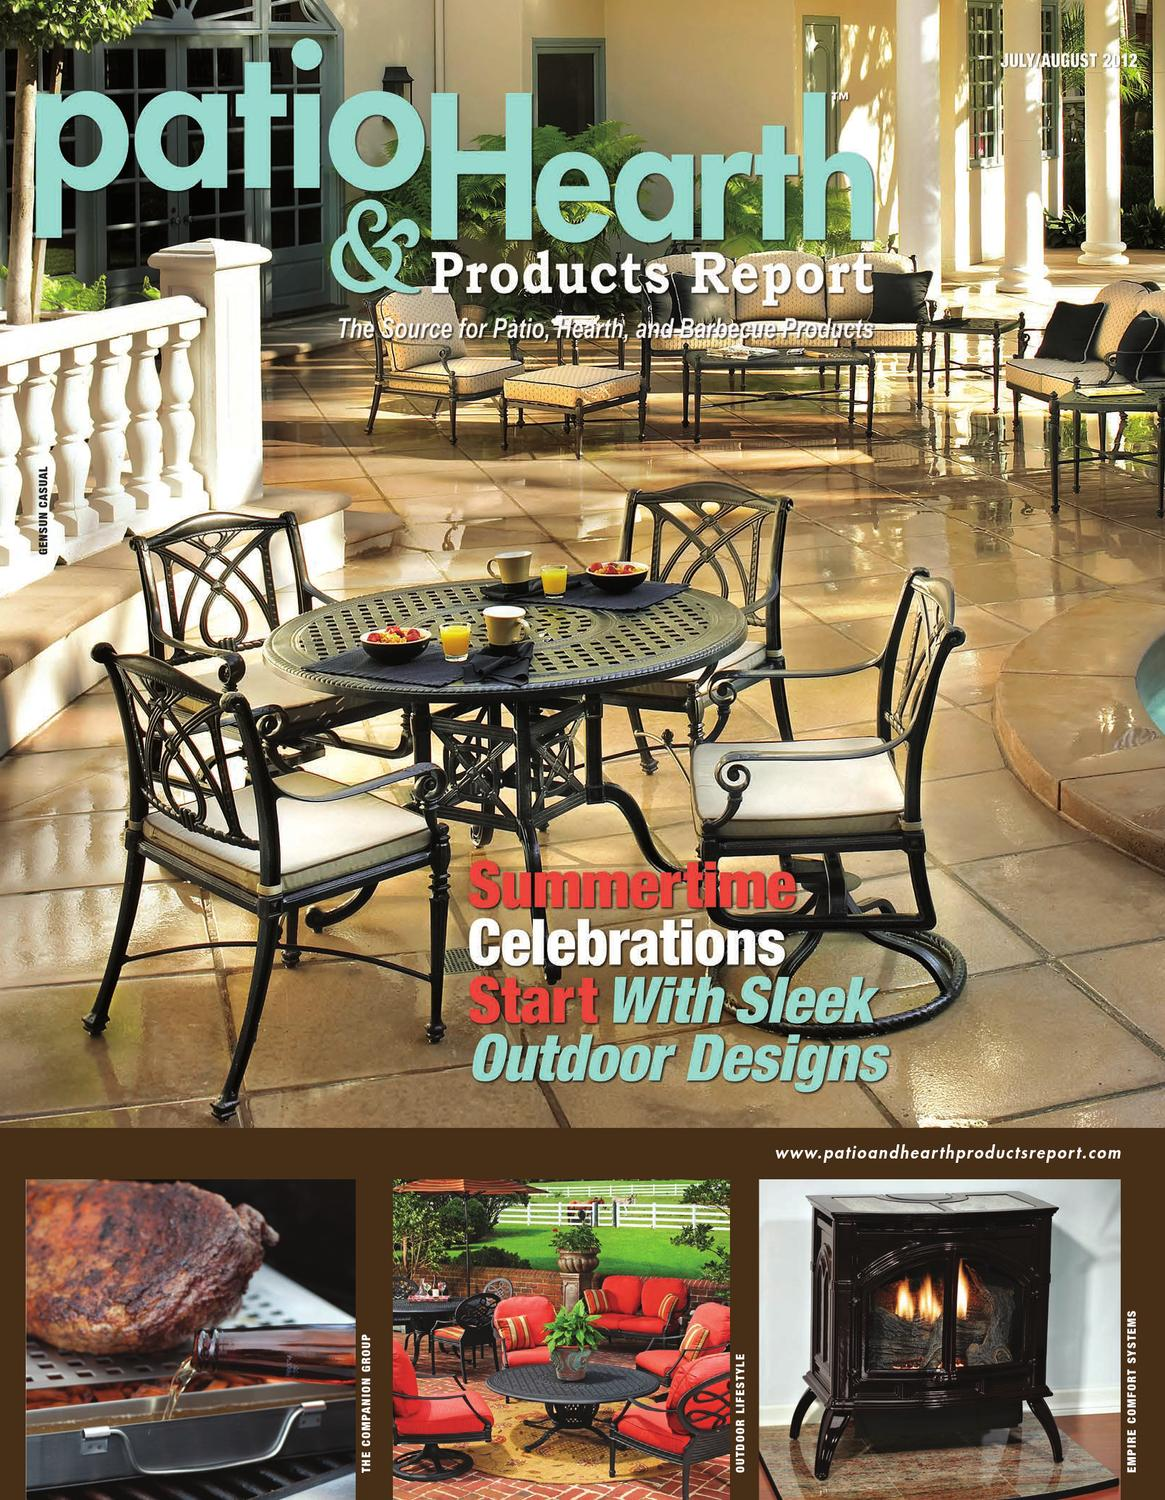 Georgetown Fireplace and Patios Inspirational Patio and Hearth Products Report July August 2012 by